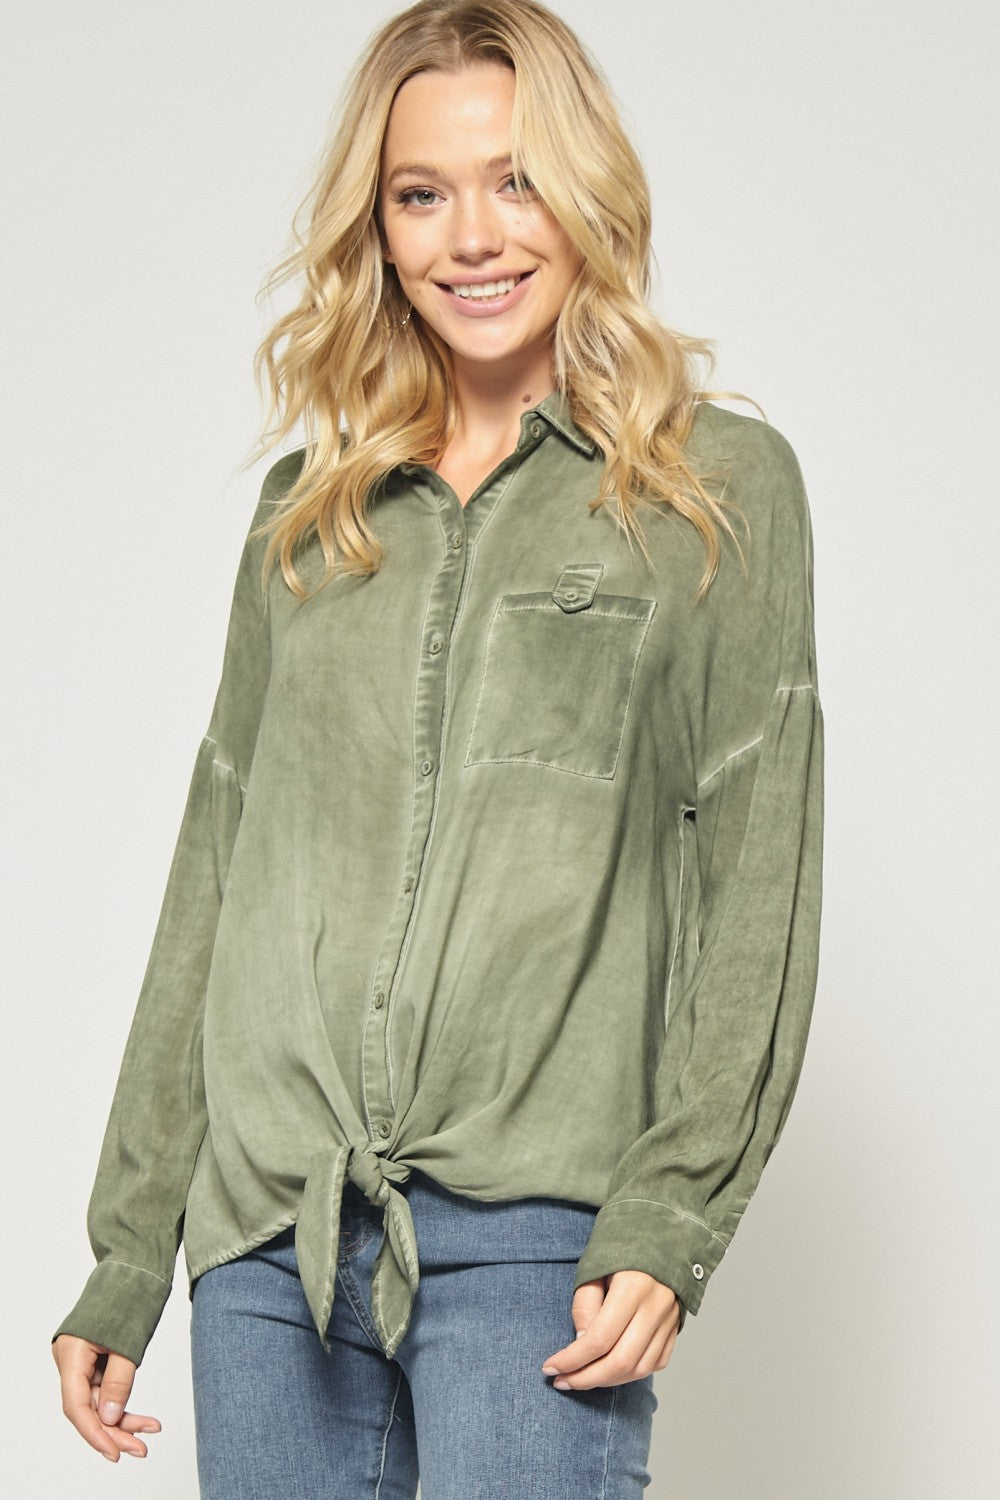 Front Tie Washed Dye Top in Olive